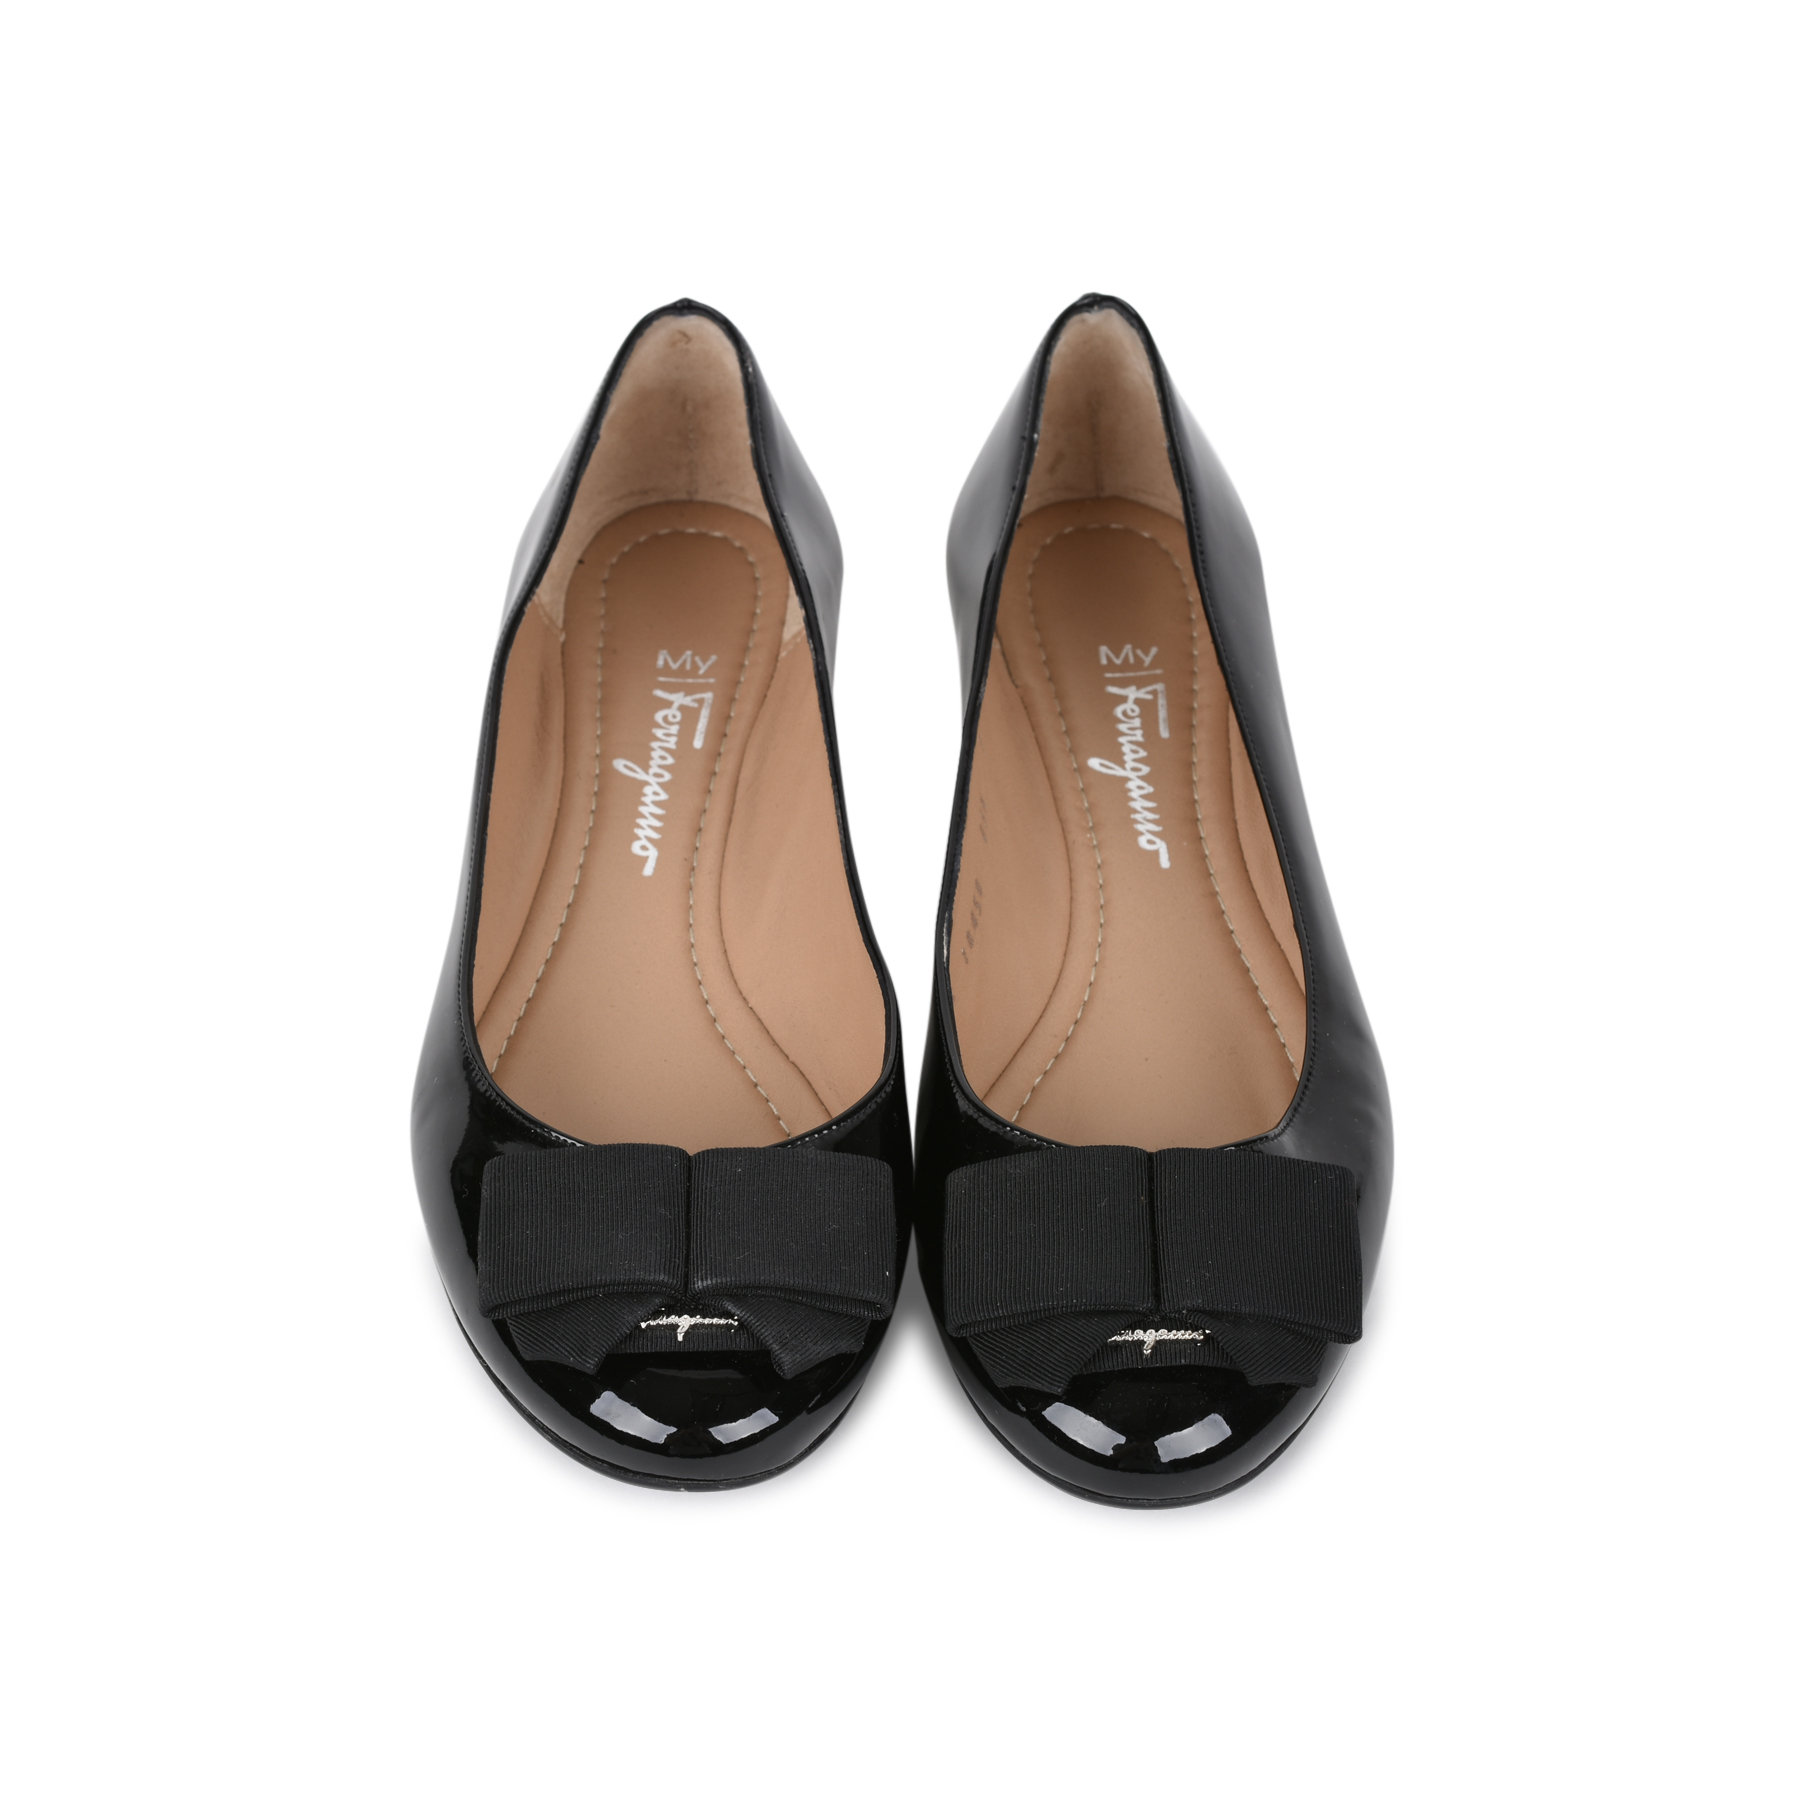 a37b3e7da Authentic Second Hand Salvatore Ferragamo Bow Flats (PSS-506-00017) - THE  FIFTH COLLECTION